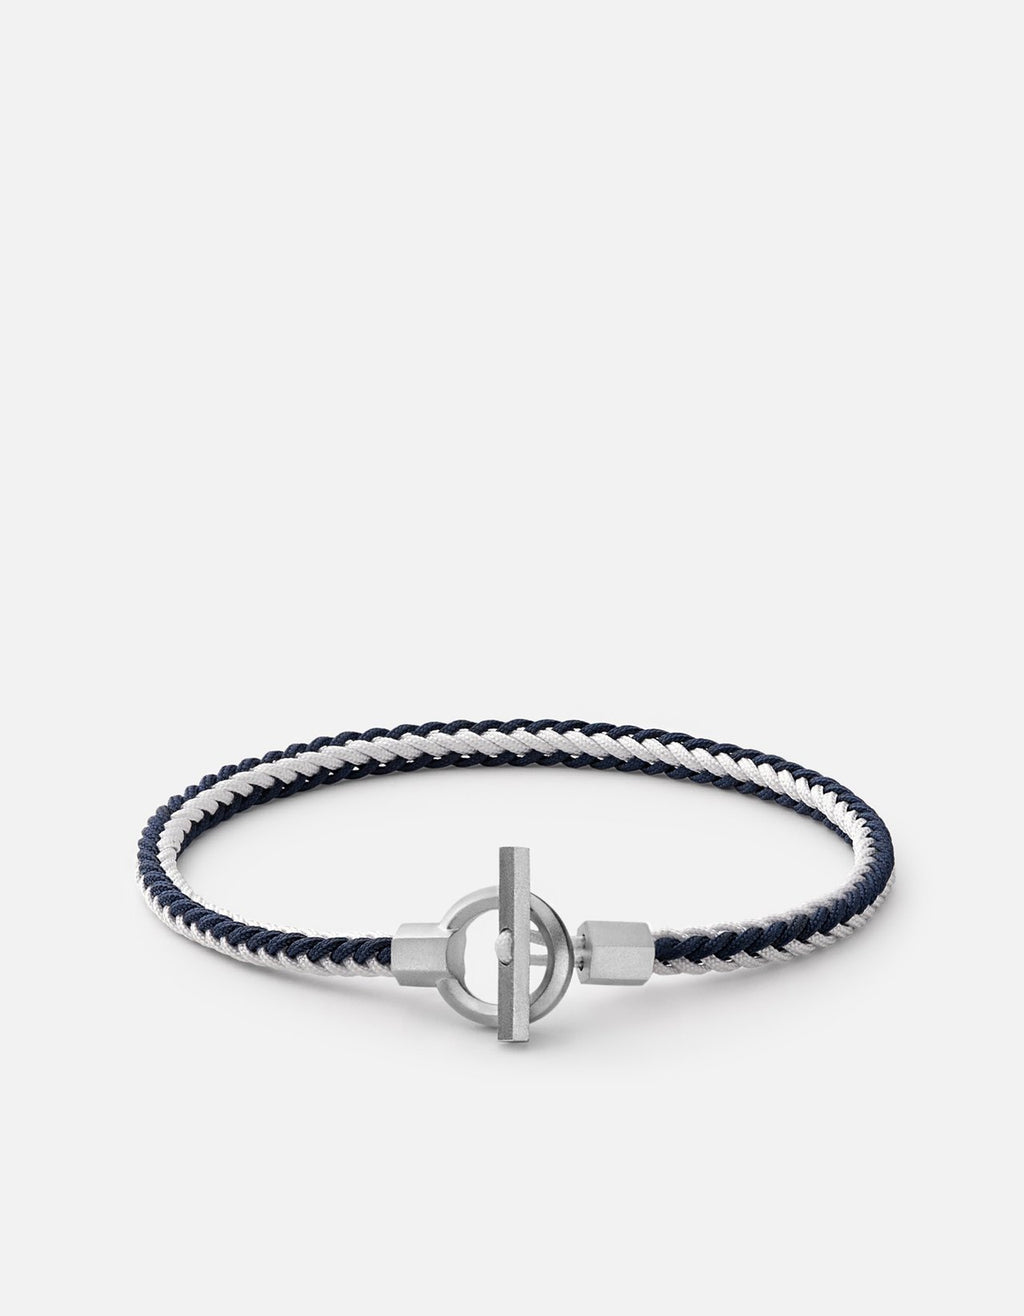 Miansai Atlas Rope Bracelet, Sterling Silver Navy/White